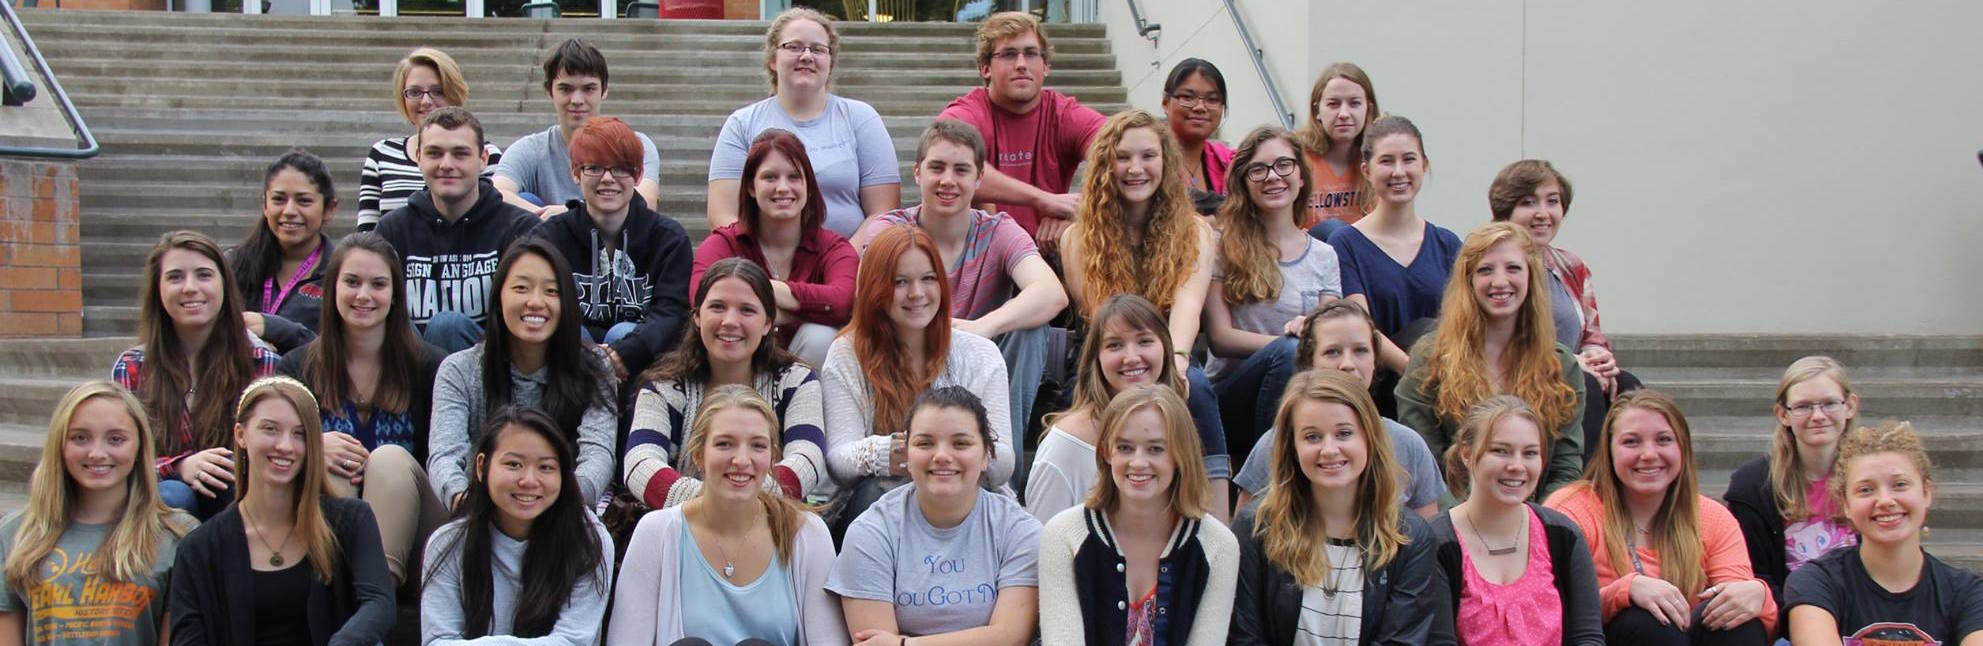 Honors students on the steps